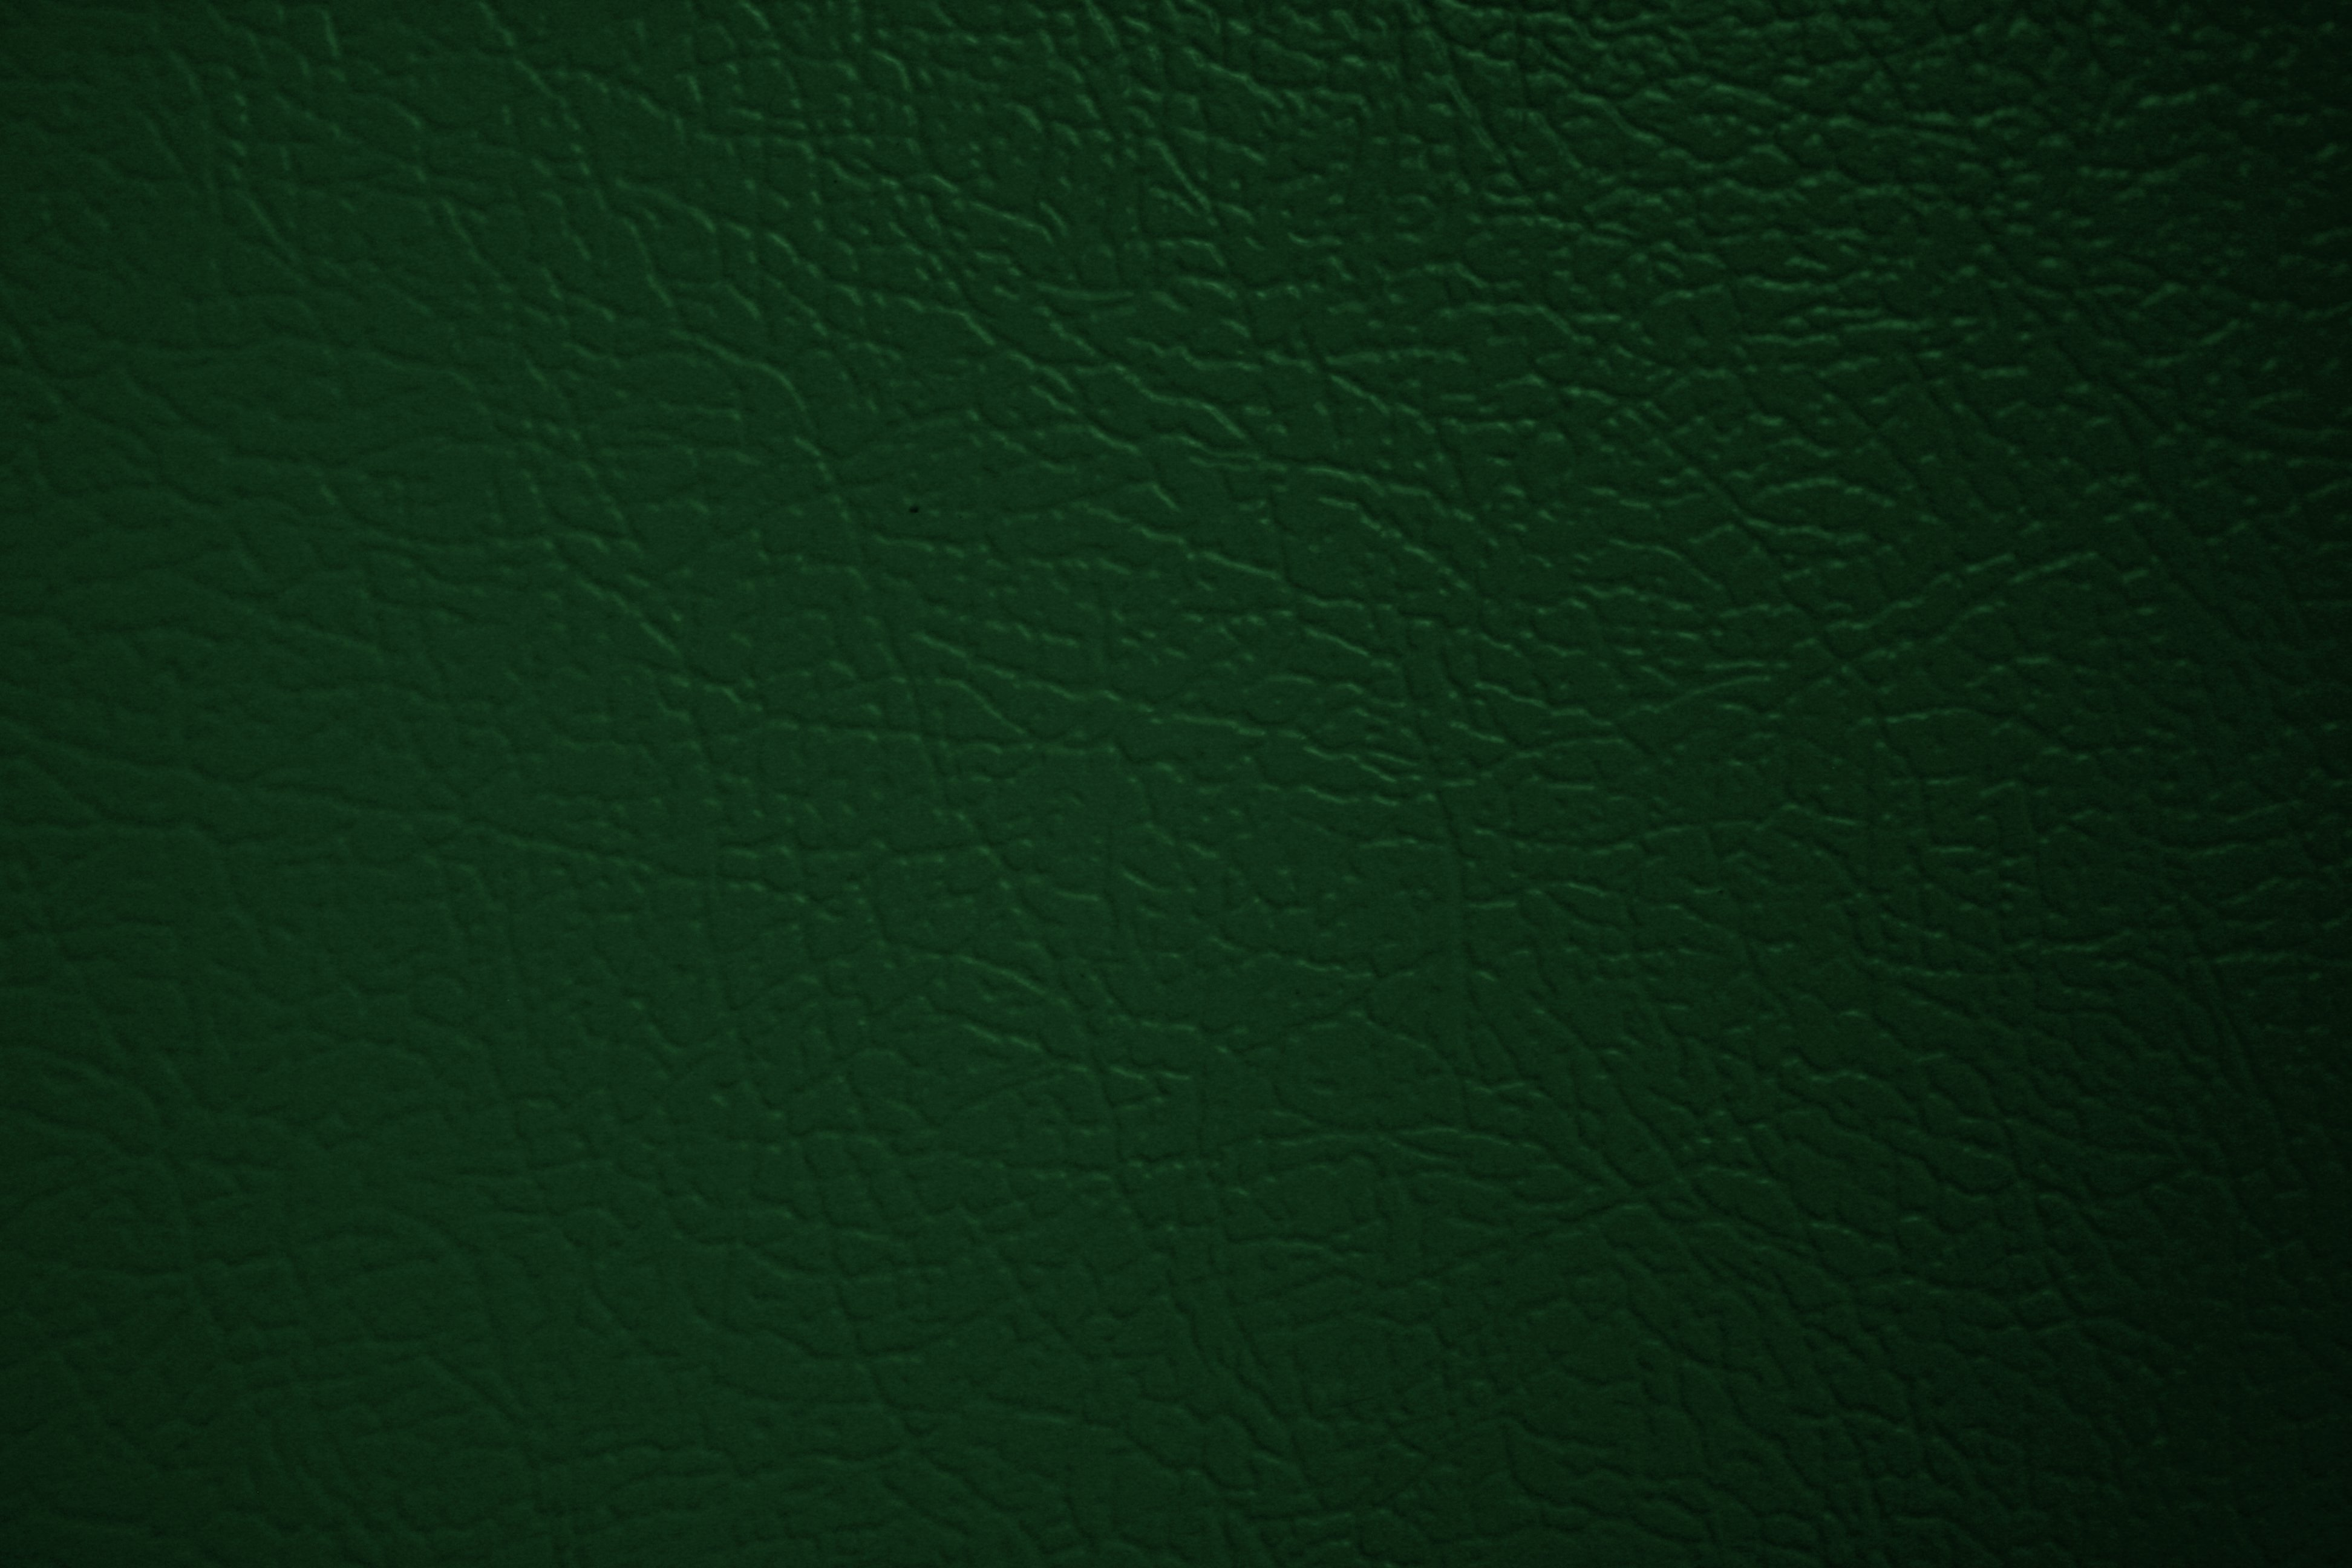 Green Faux Leather Texture  Photos Public Domain. Enesco Kitchen Fairies. Hanging Herb Garden Kitchen. Kitchen Craft Cookware Complaints. Kitchen Colors For Oak Cabinets. Discount Kitchen Faucets Pull Out Sprayer. Forhoja Kitchen Cart. House Plans With Outdoor Kitchen. Kitchen With Maple Cabinets